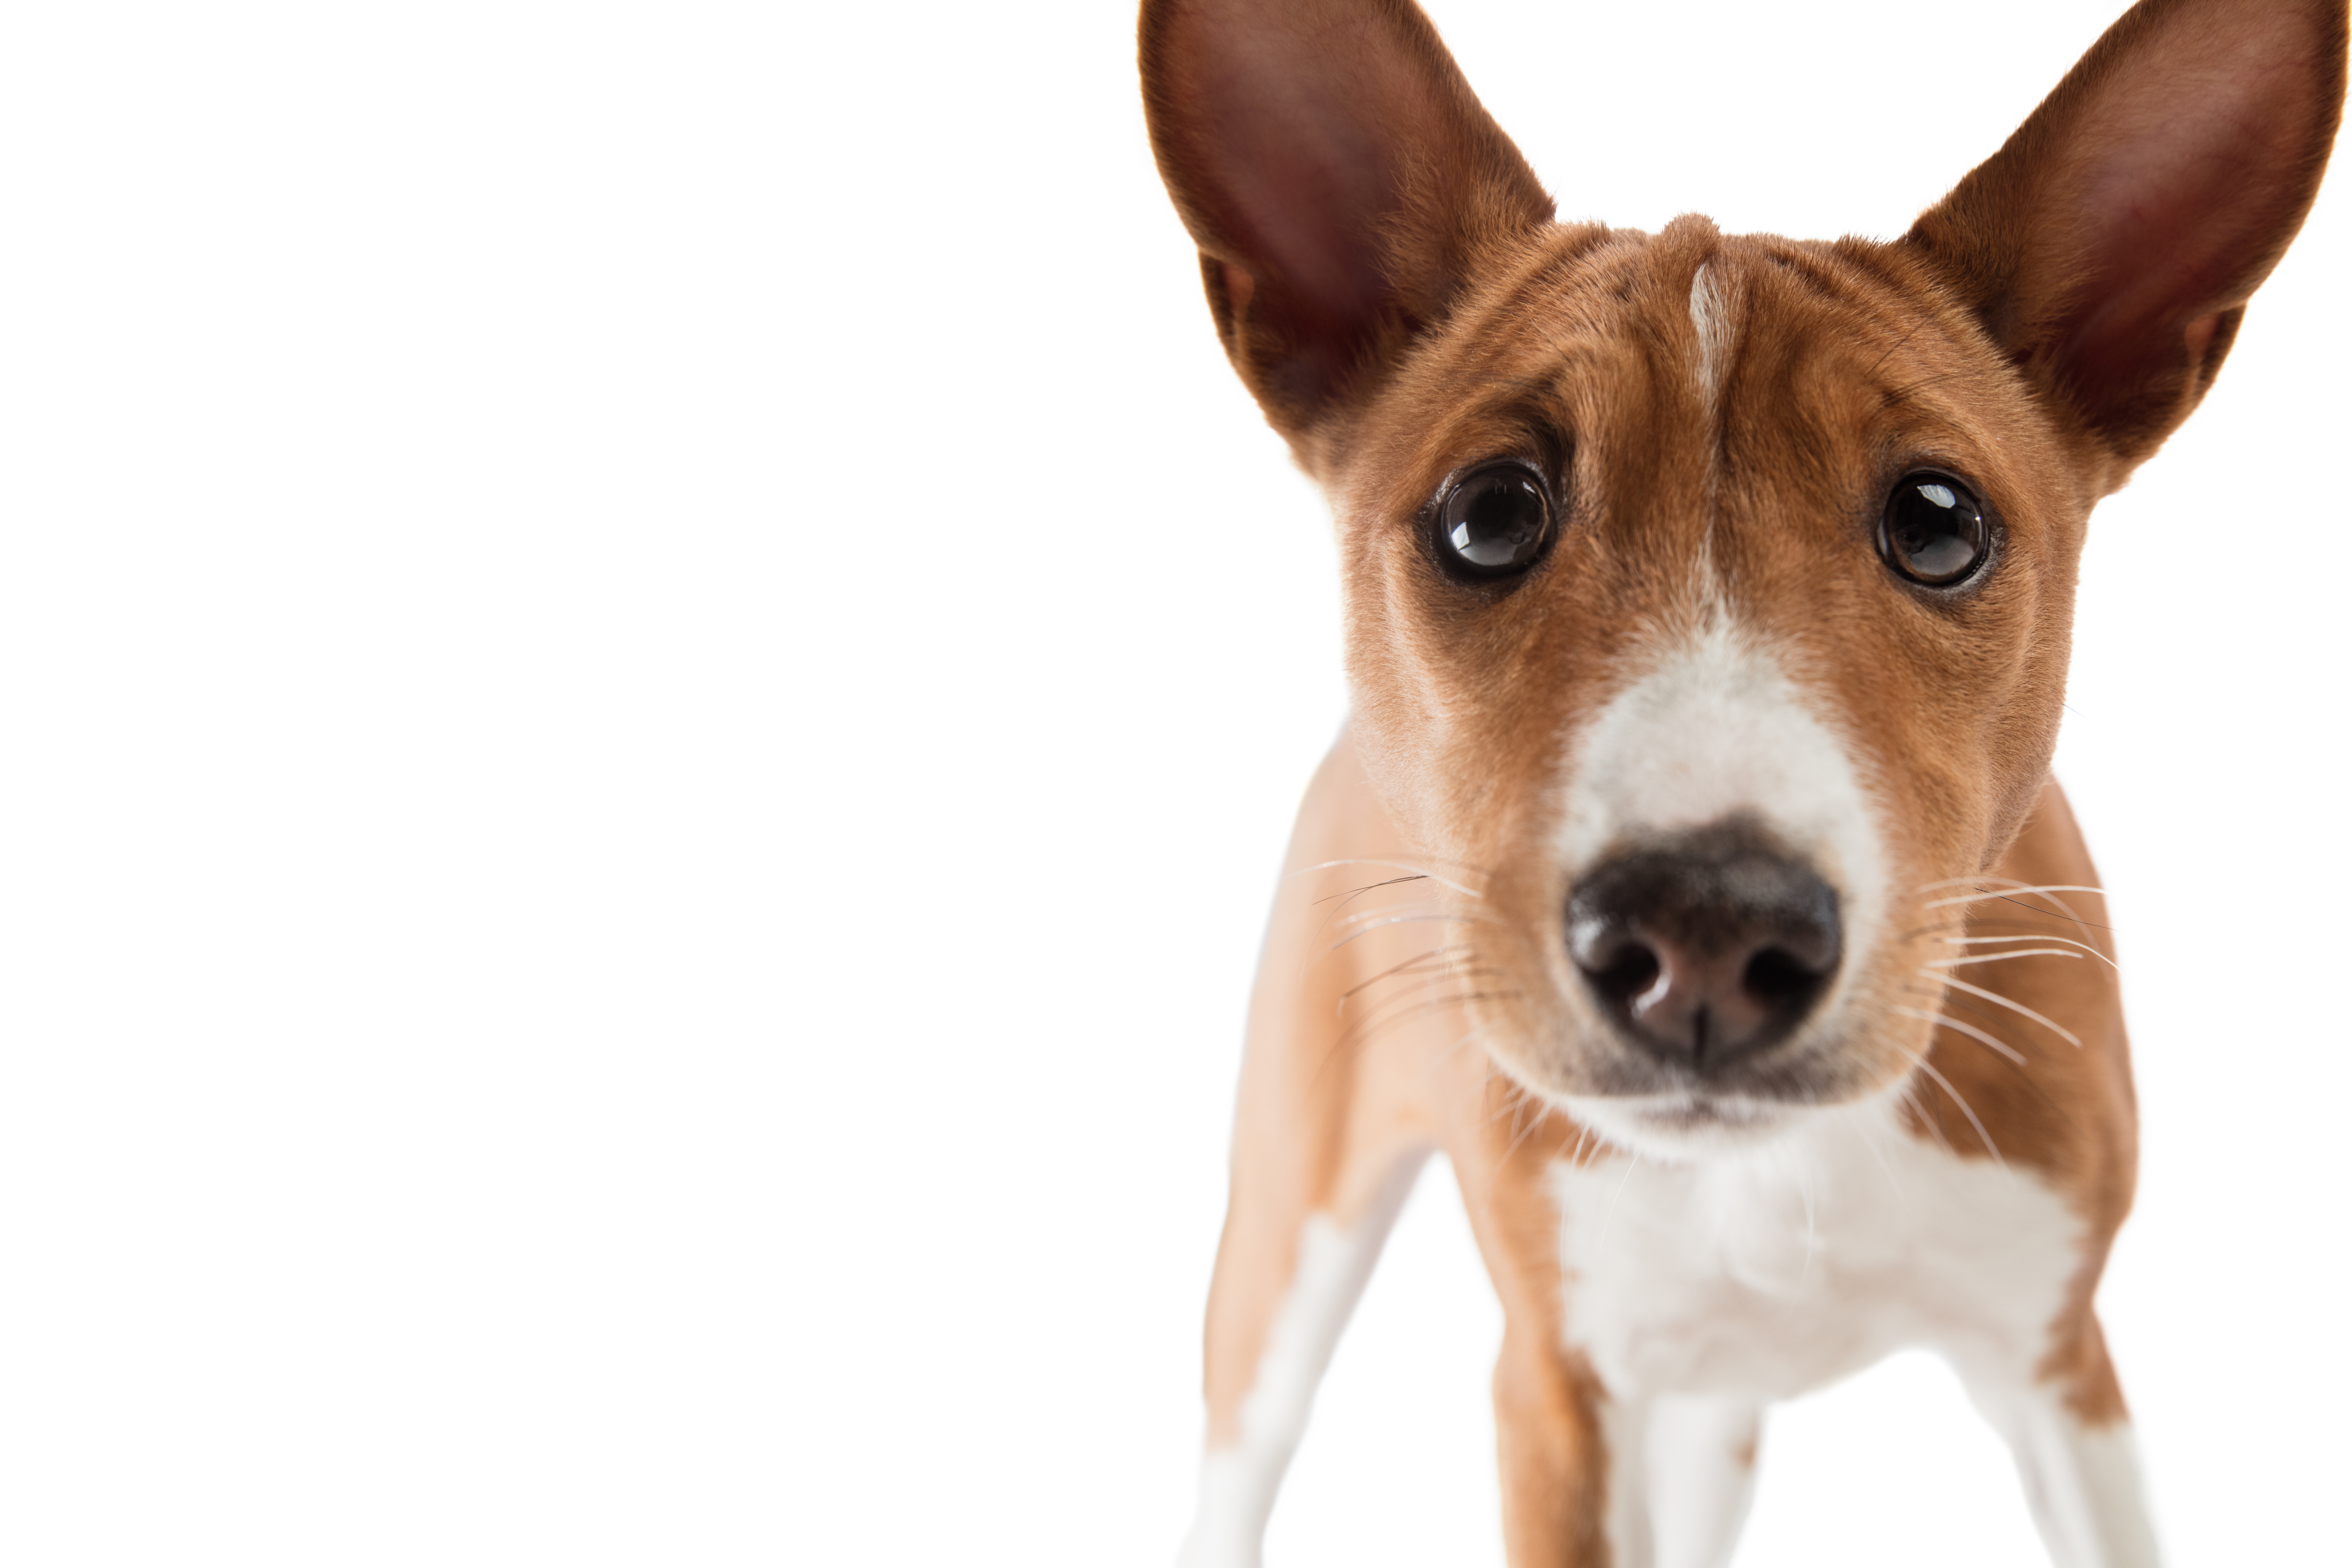 Basenji puppy looking at you! Because you need to go sign up for pupdates. Weekly support straight to your inbox, from the wonderful Ali Smith?! From Crate Training to development, vaccinations to socialisation! Better go, or Basenji will yodel...